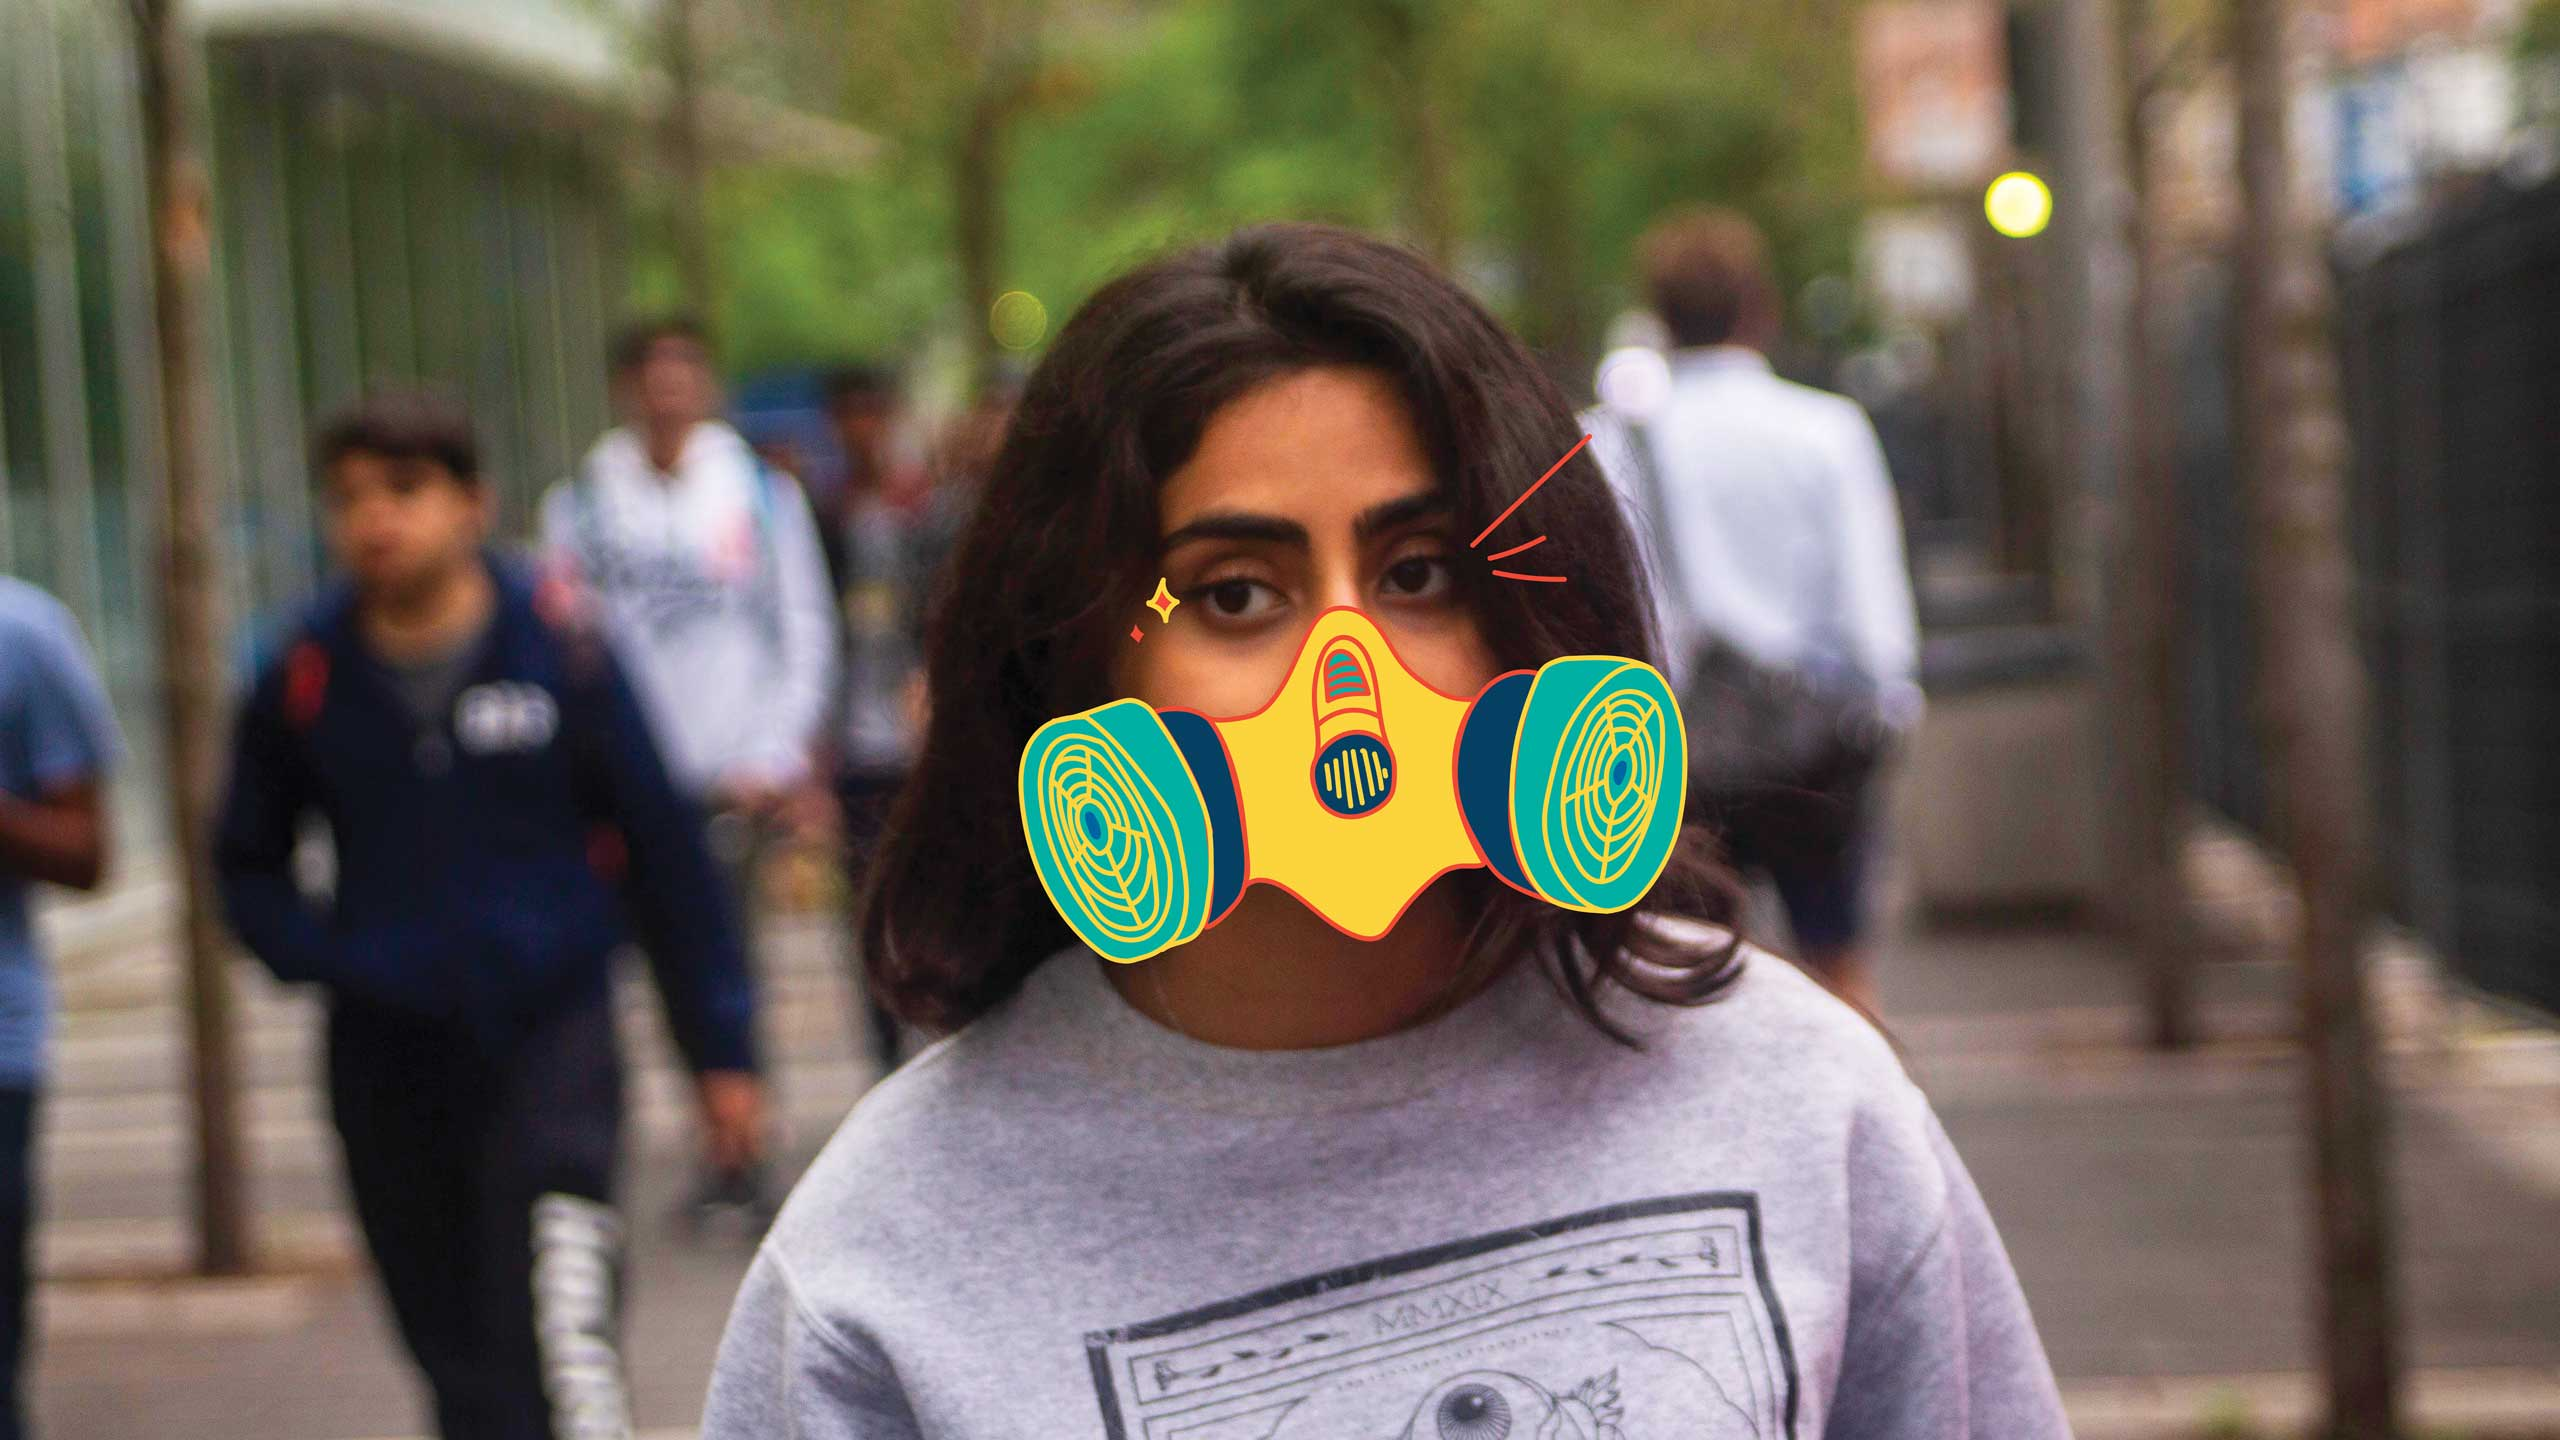 A photo of a female Ryerson student walking down Gould street with an illustrated gas mask over their mouth